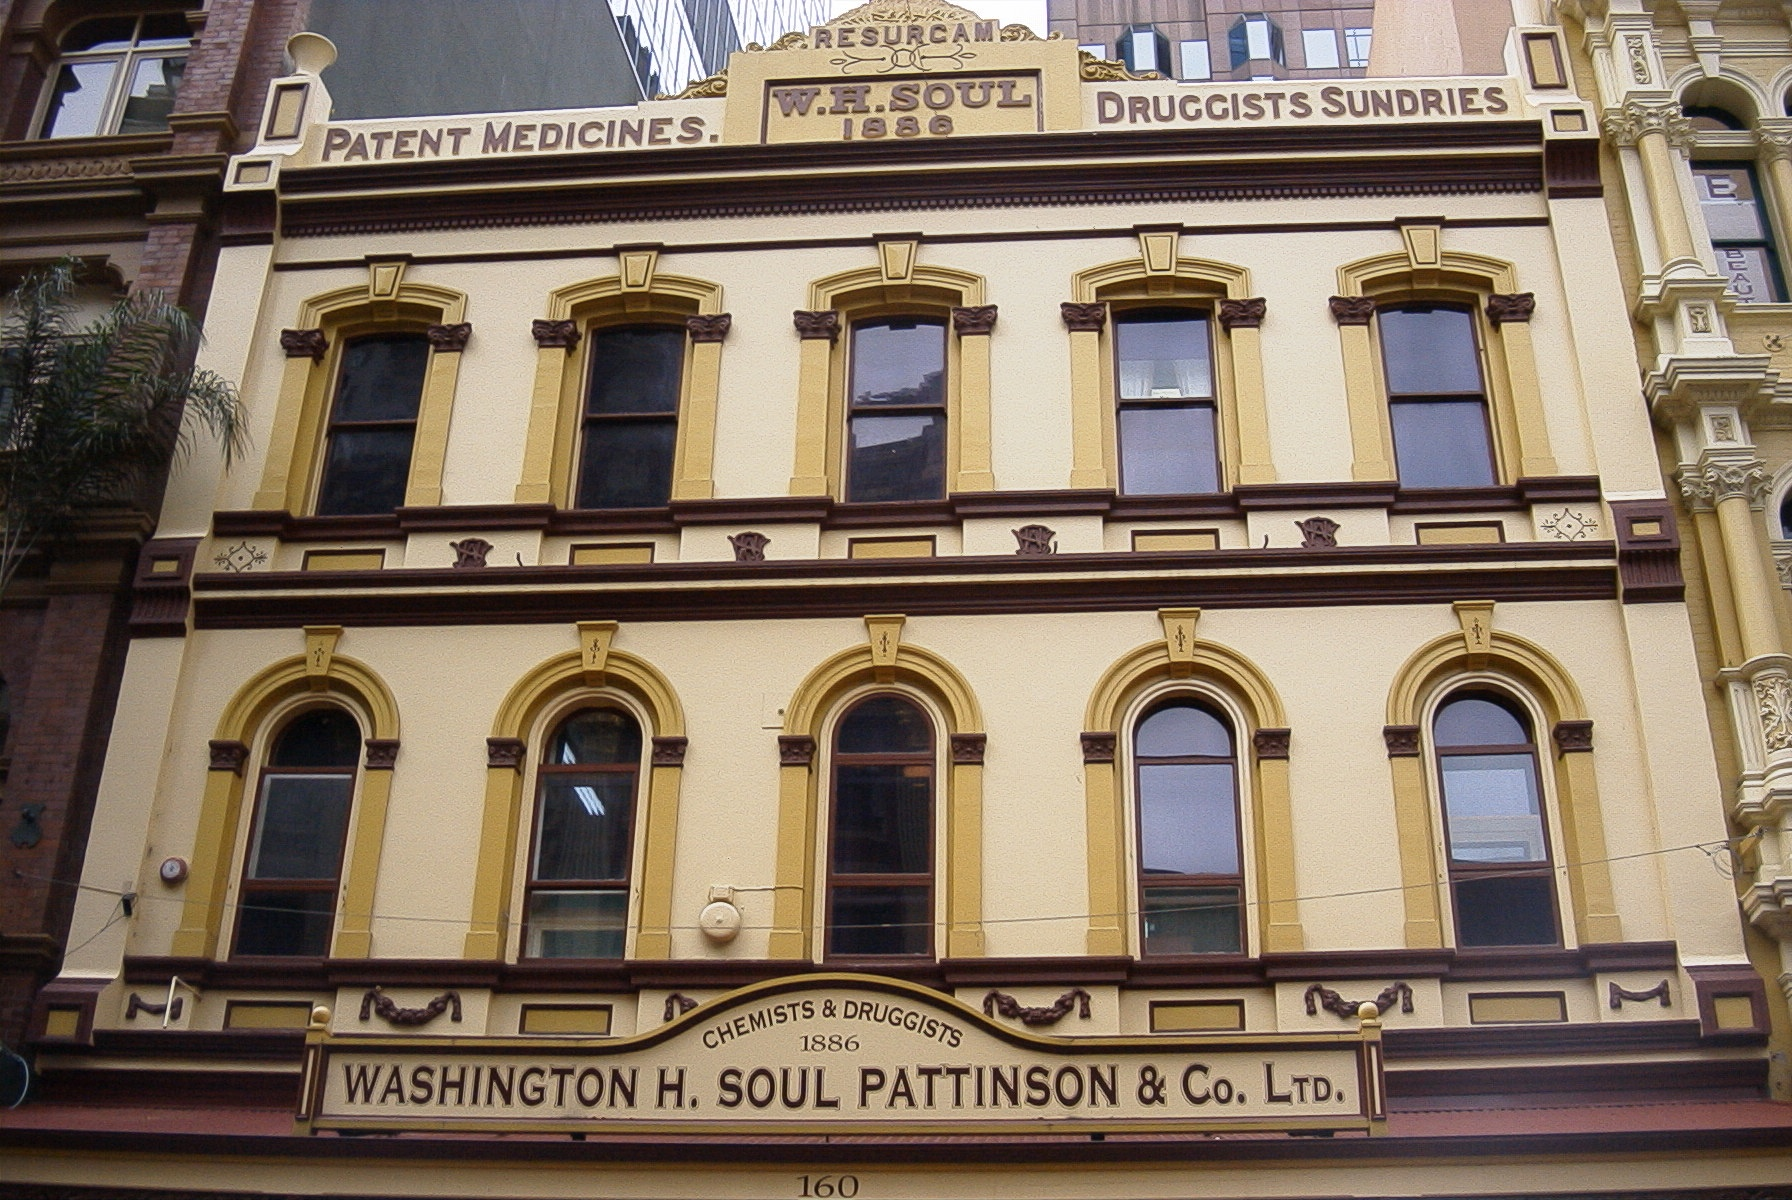 Washington H. Soul Pattinson